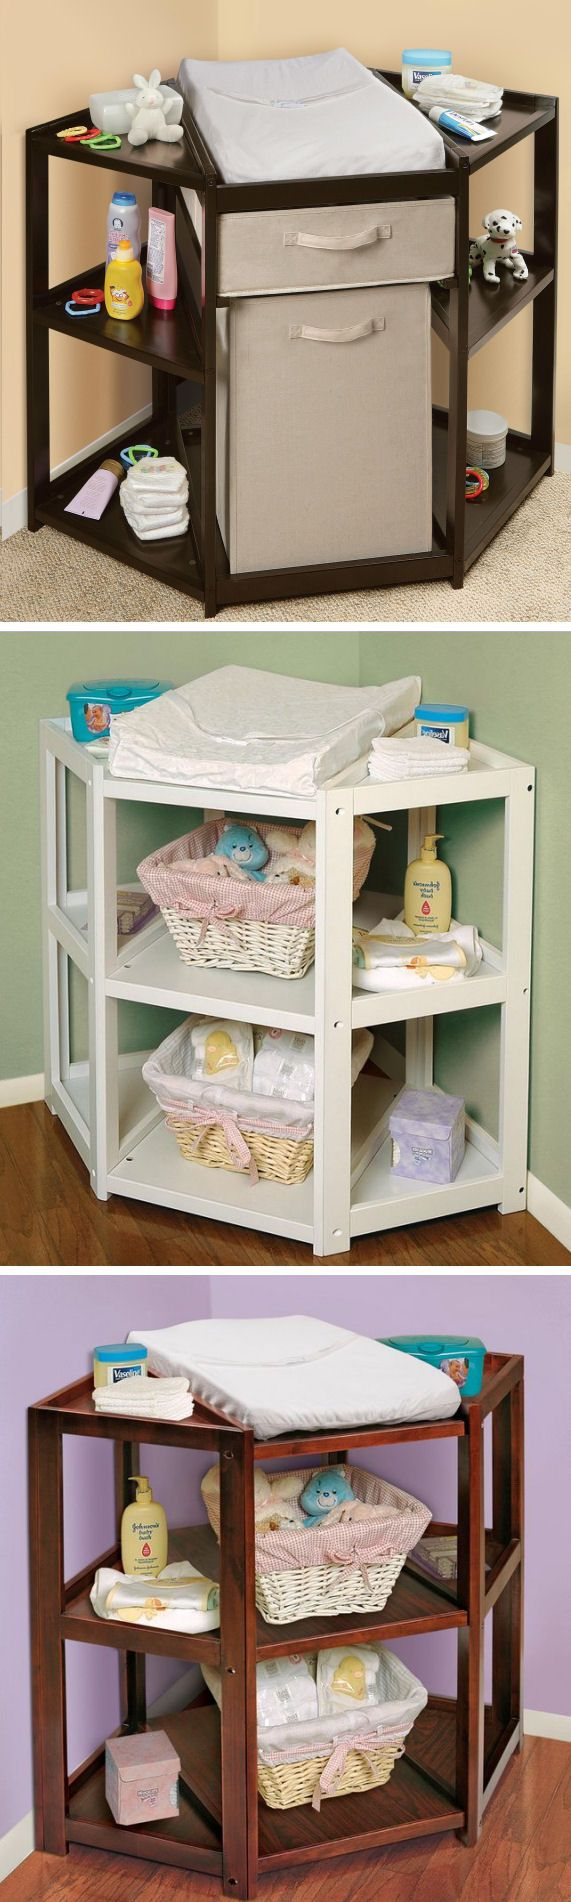 A Better Changing Table Who Decided Baby From The Side Was Good Idea Loving This Corner Never Used Our Last One Because